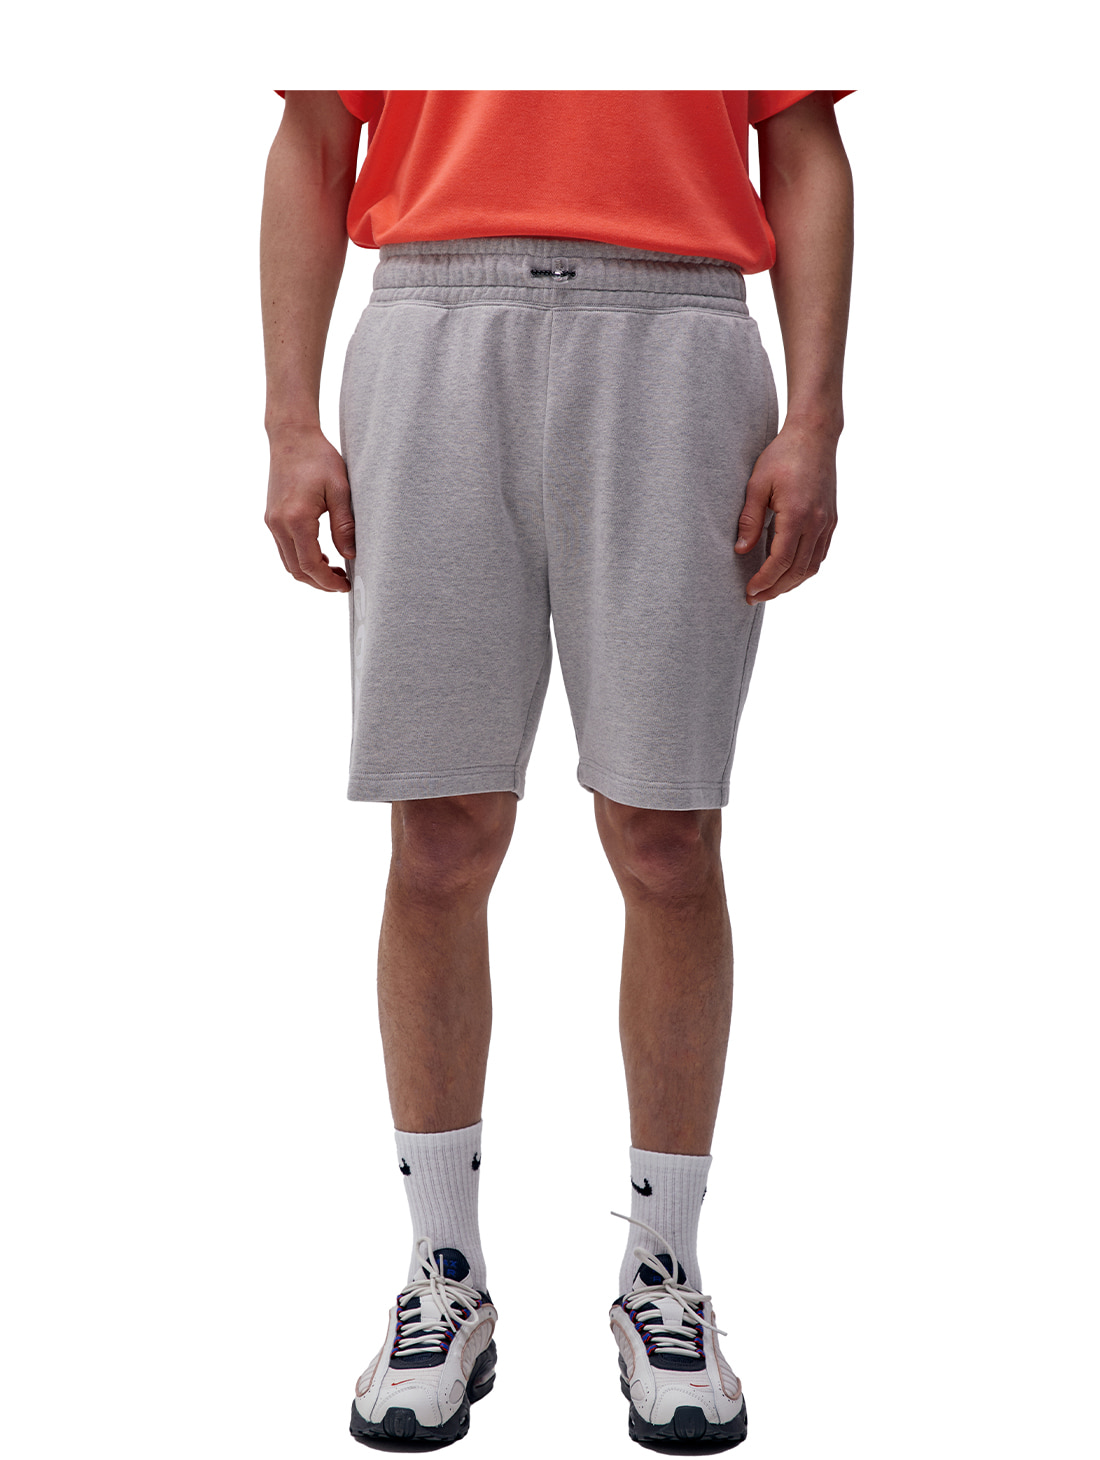 FLOCKING HALF PANTS - GREY